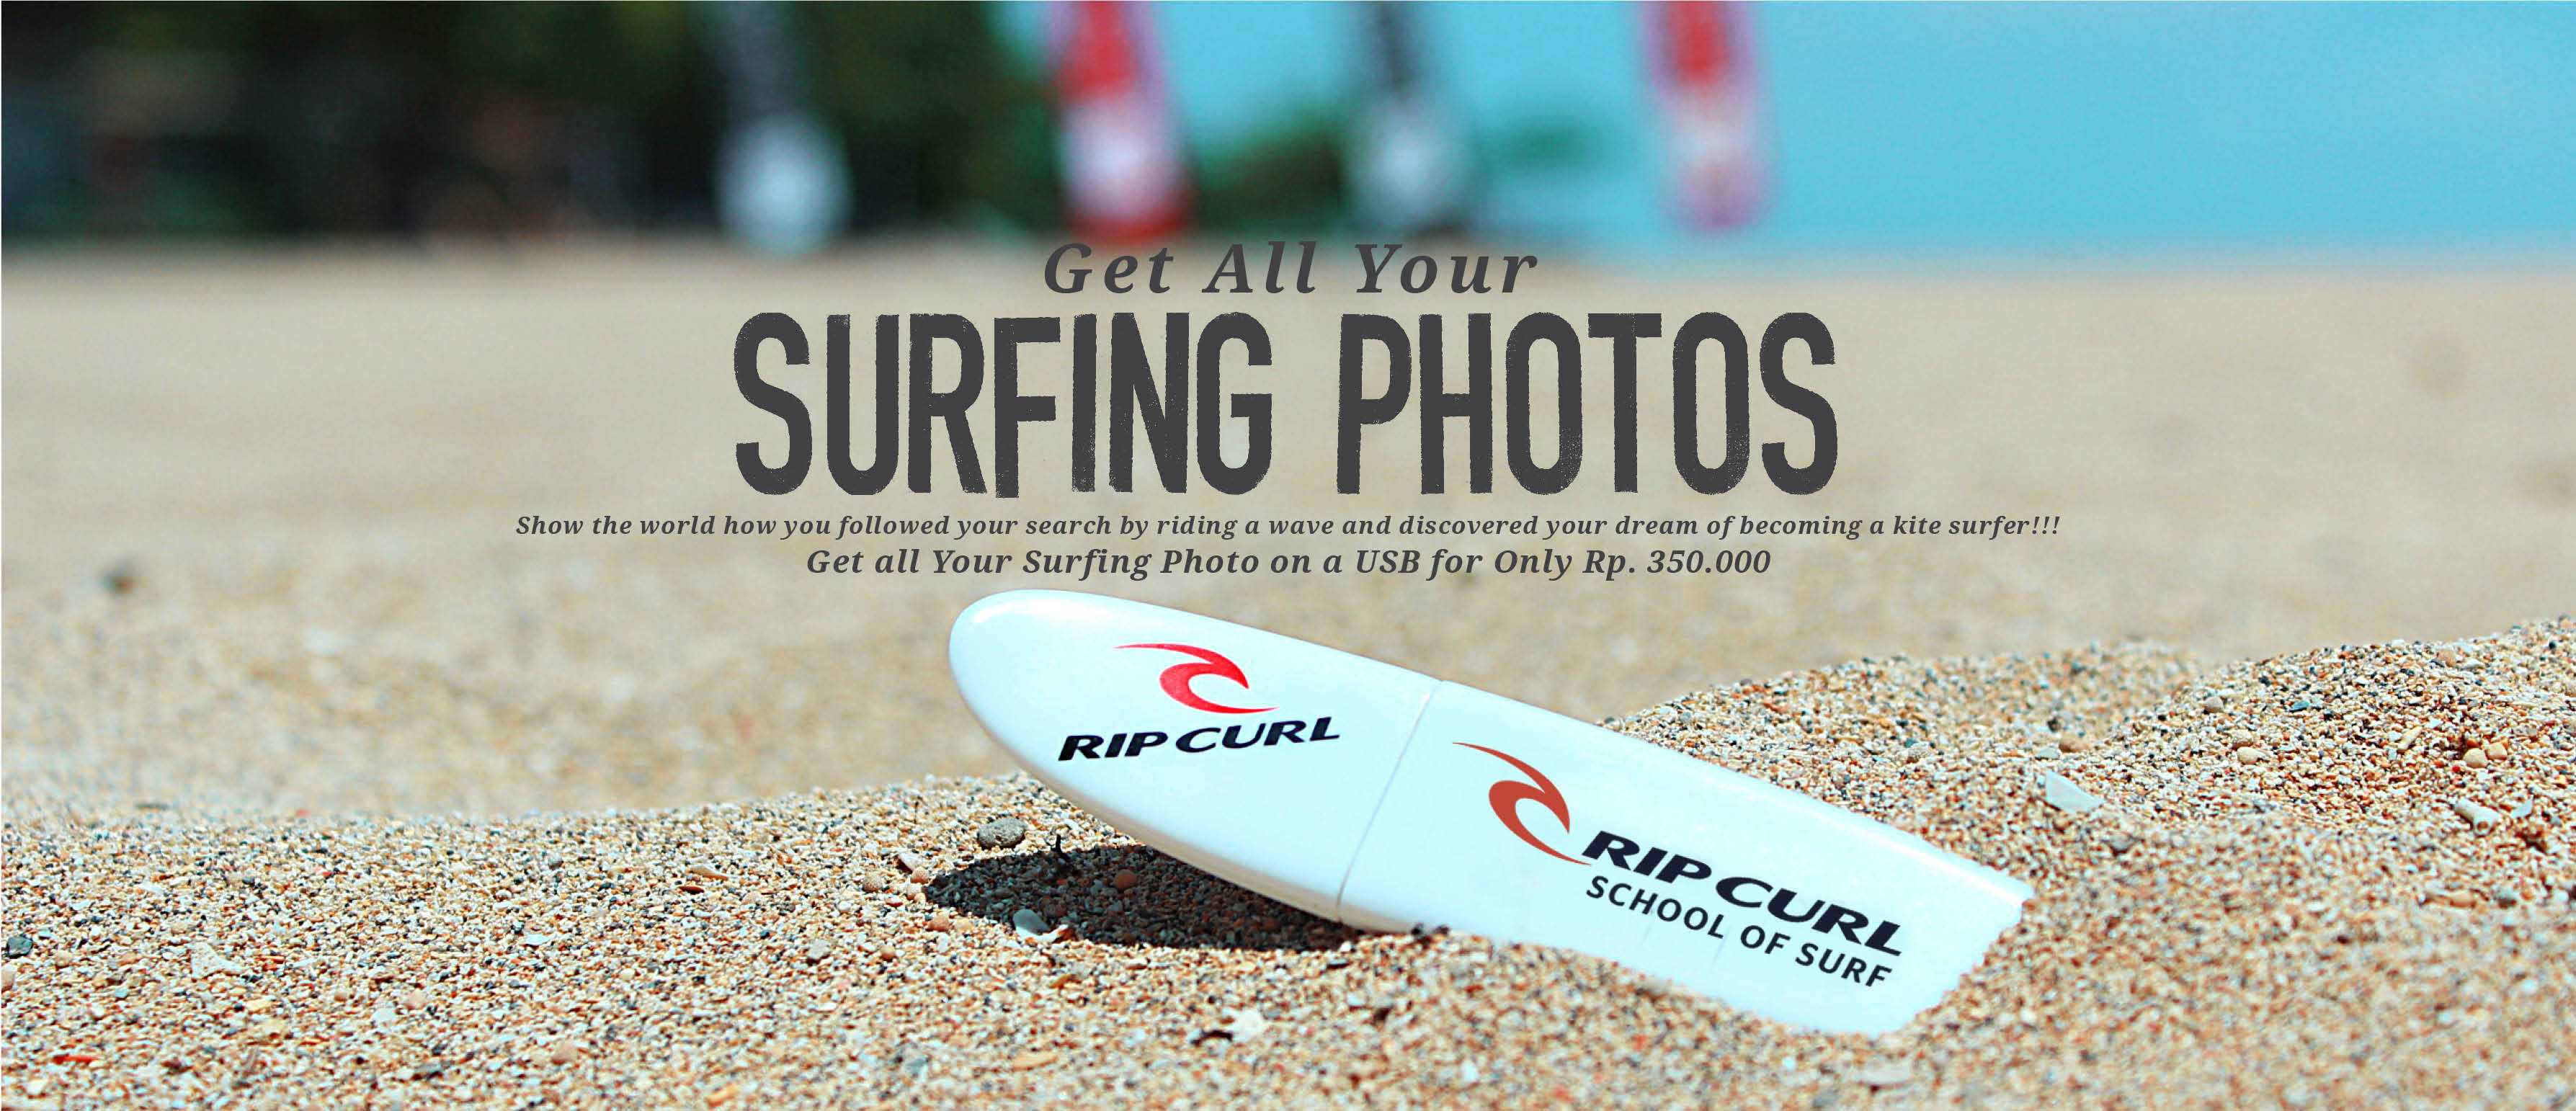 About Us - Rip Curl School of Surf, the finest surf school